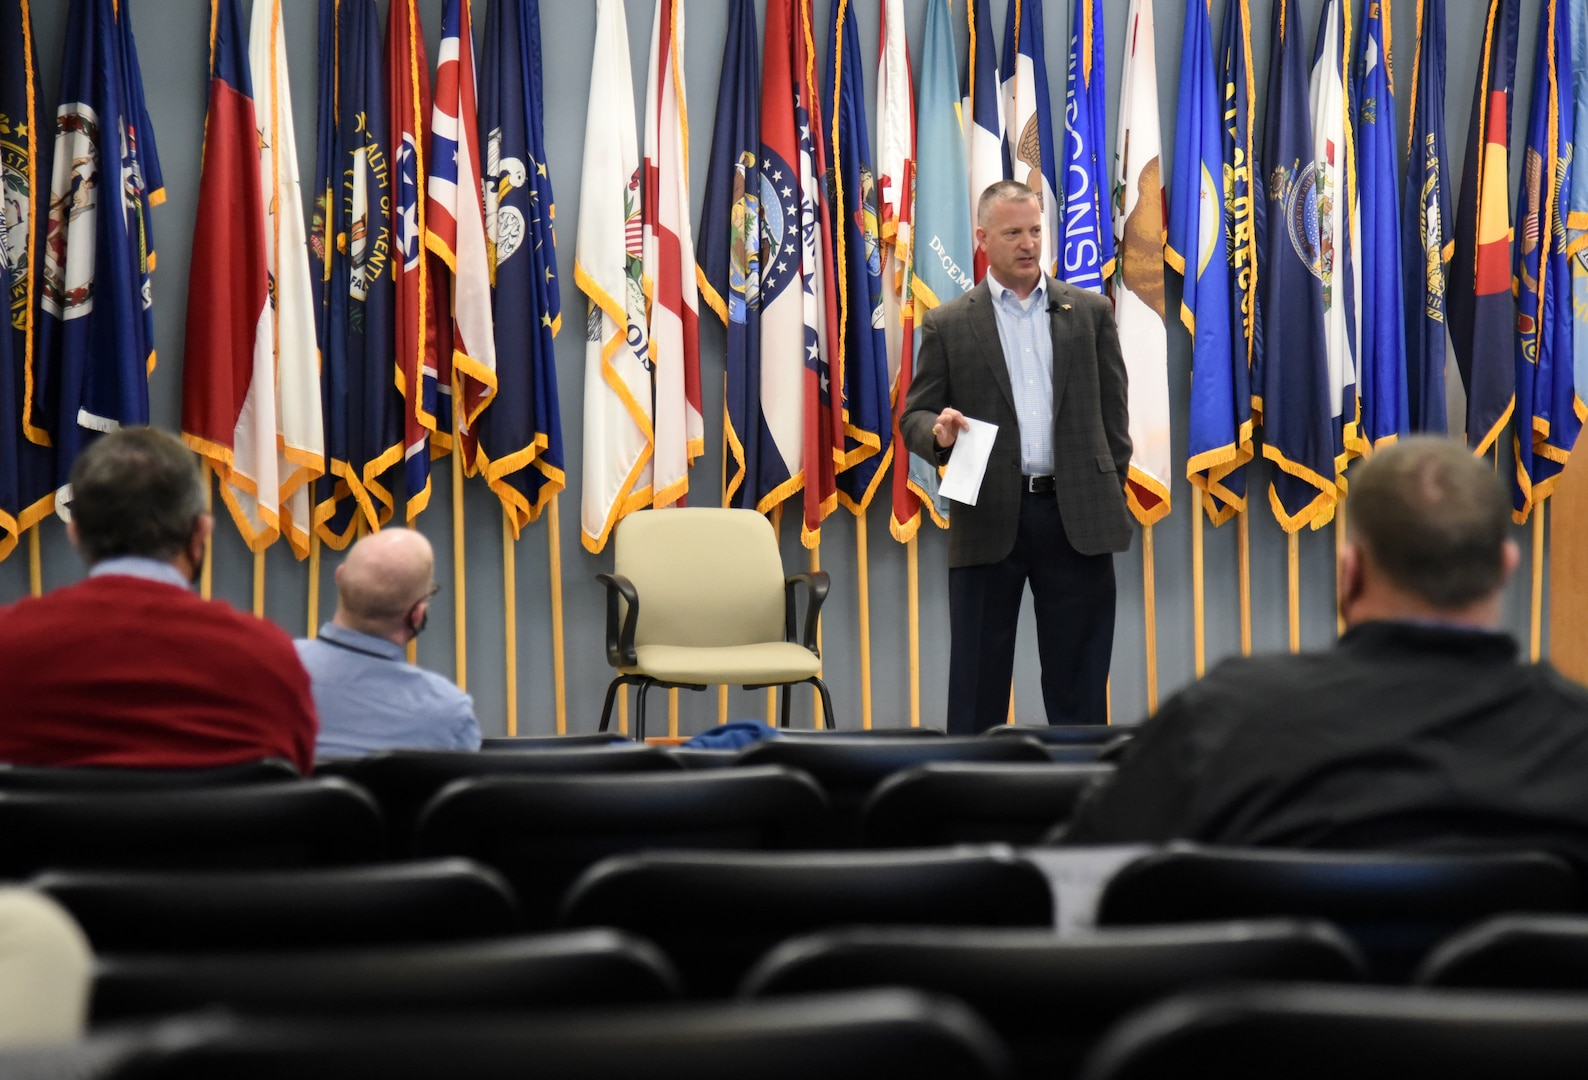 Brig. Gen. K. Weedon Gallagher, Virginia National Guard Land Component Commander, speaks to participants in the Virginia Department of Military Affairs' mentorship program during an event Nov. 19, 2020, at Fort Pickett, Virginia.